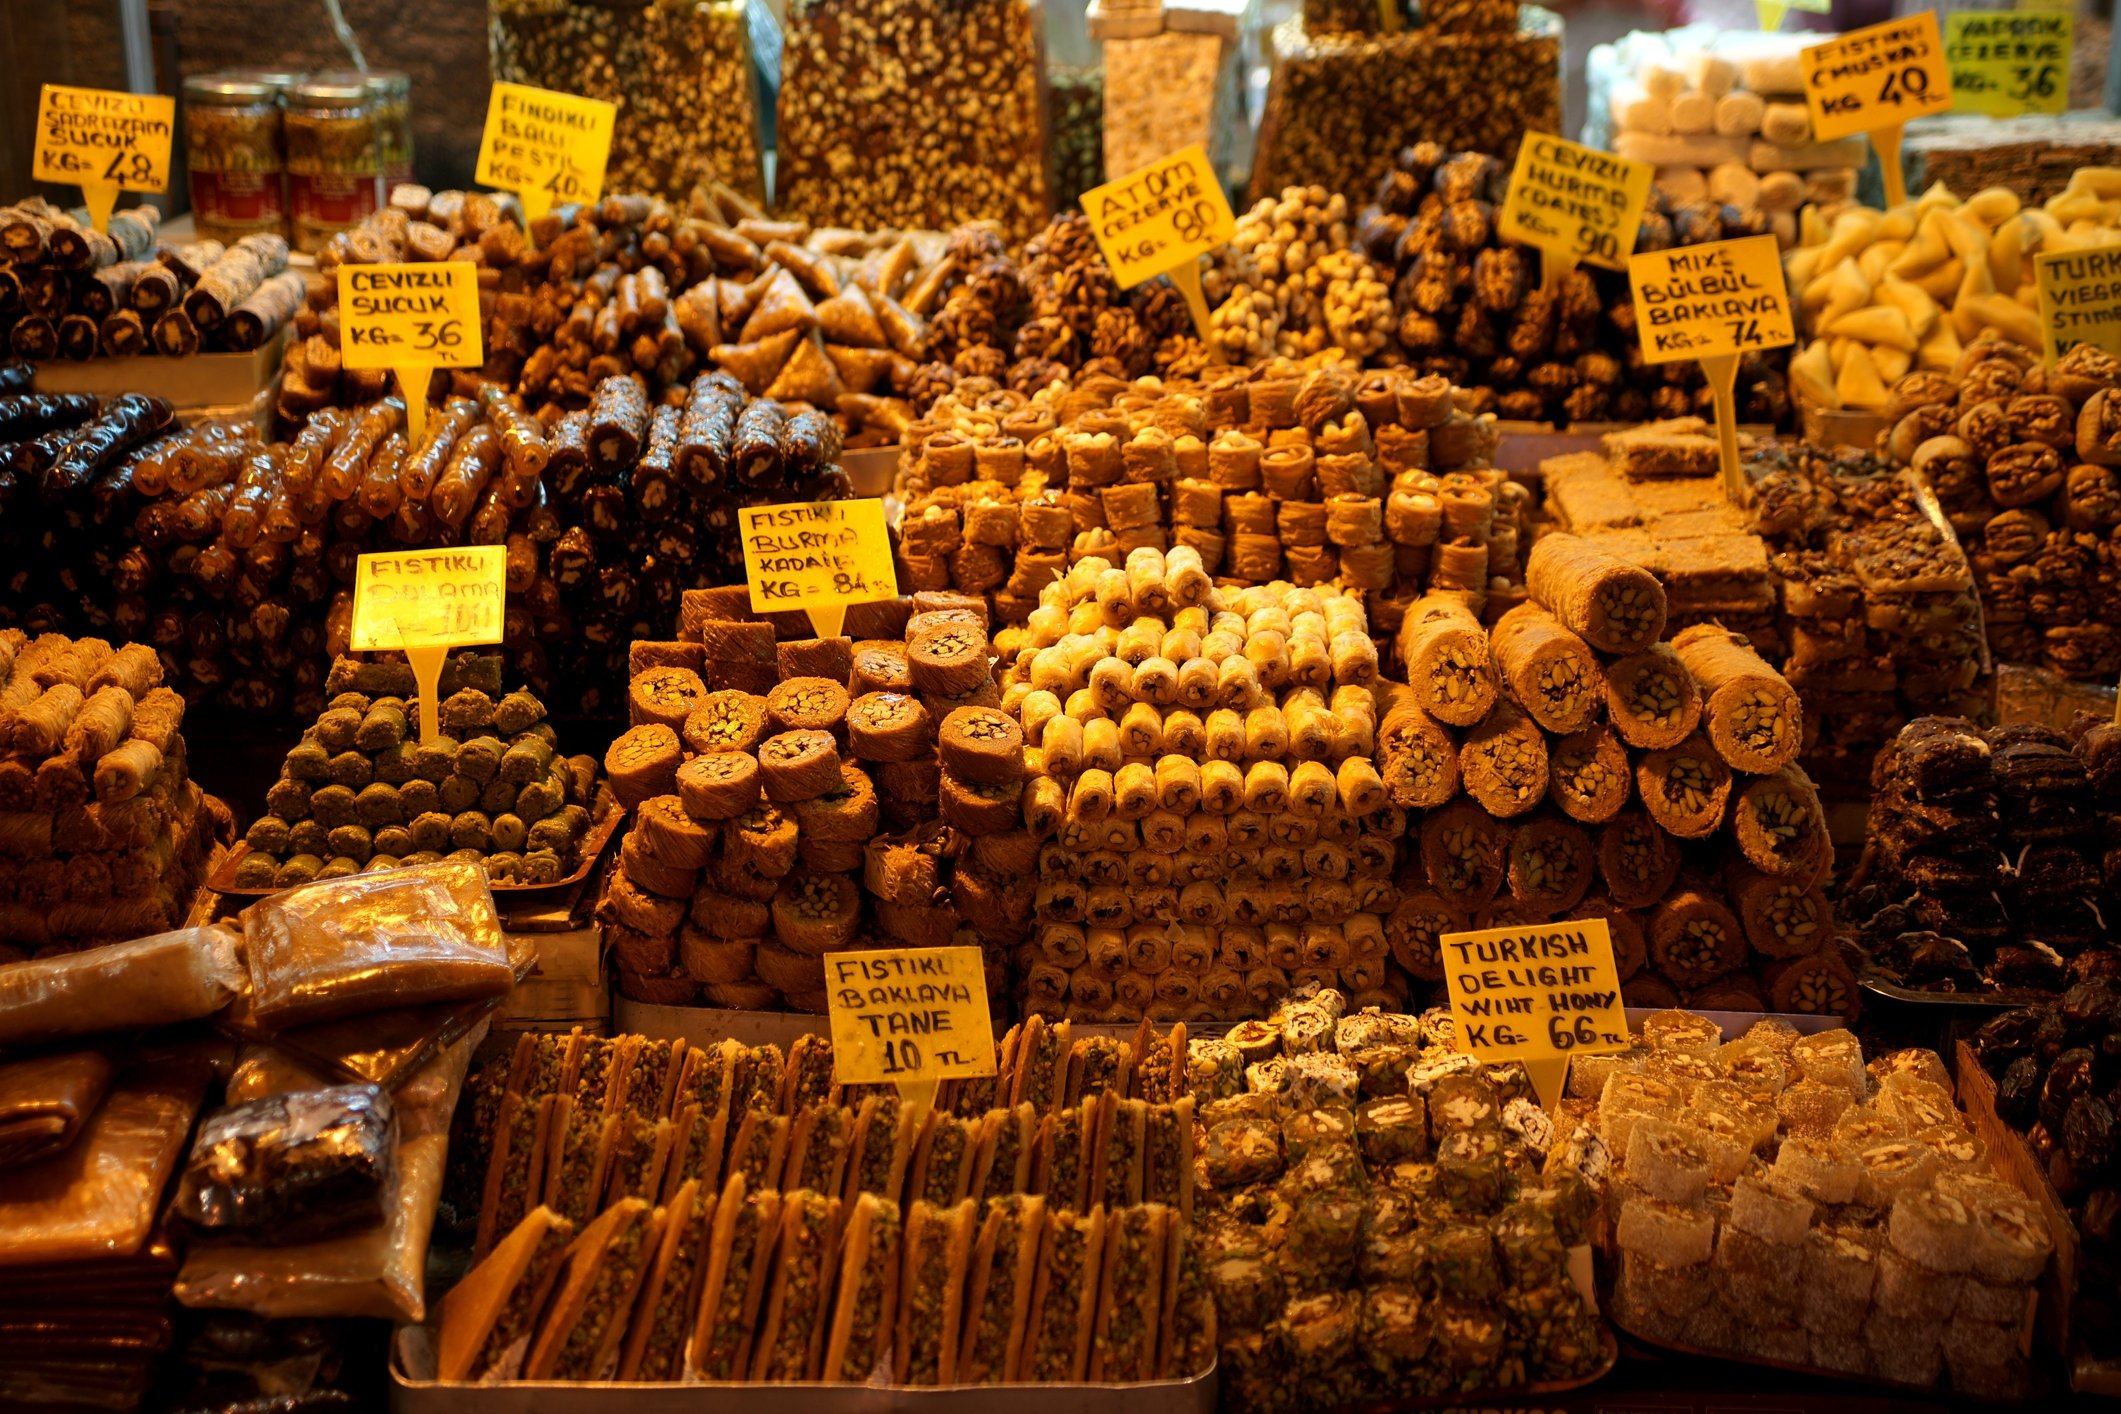 From baklava to cezerye, shops at Istanbul's famous Grand Bazaar have all sorts of Turkish desserts and candies. (iStock Photo)